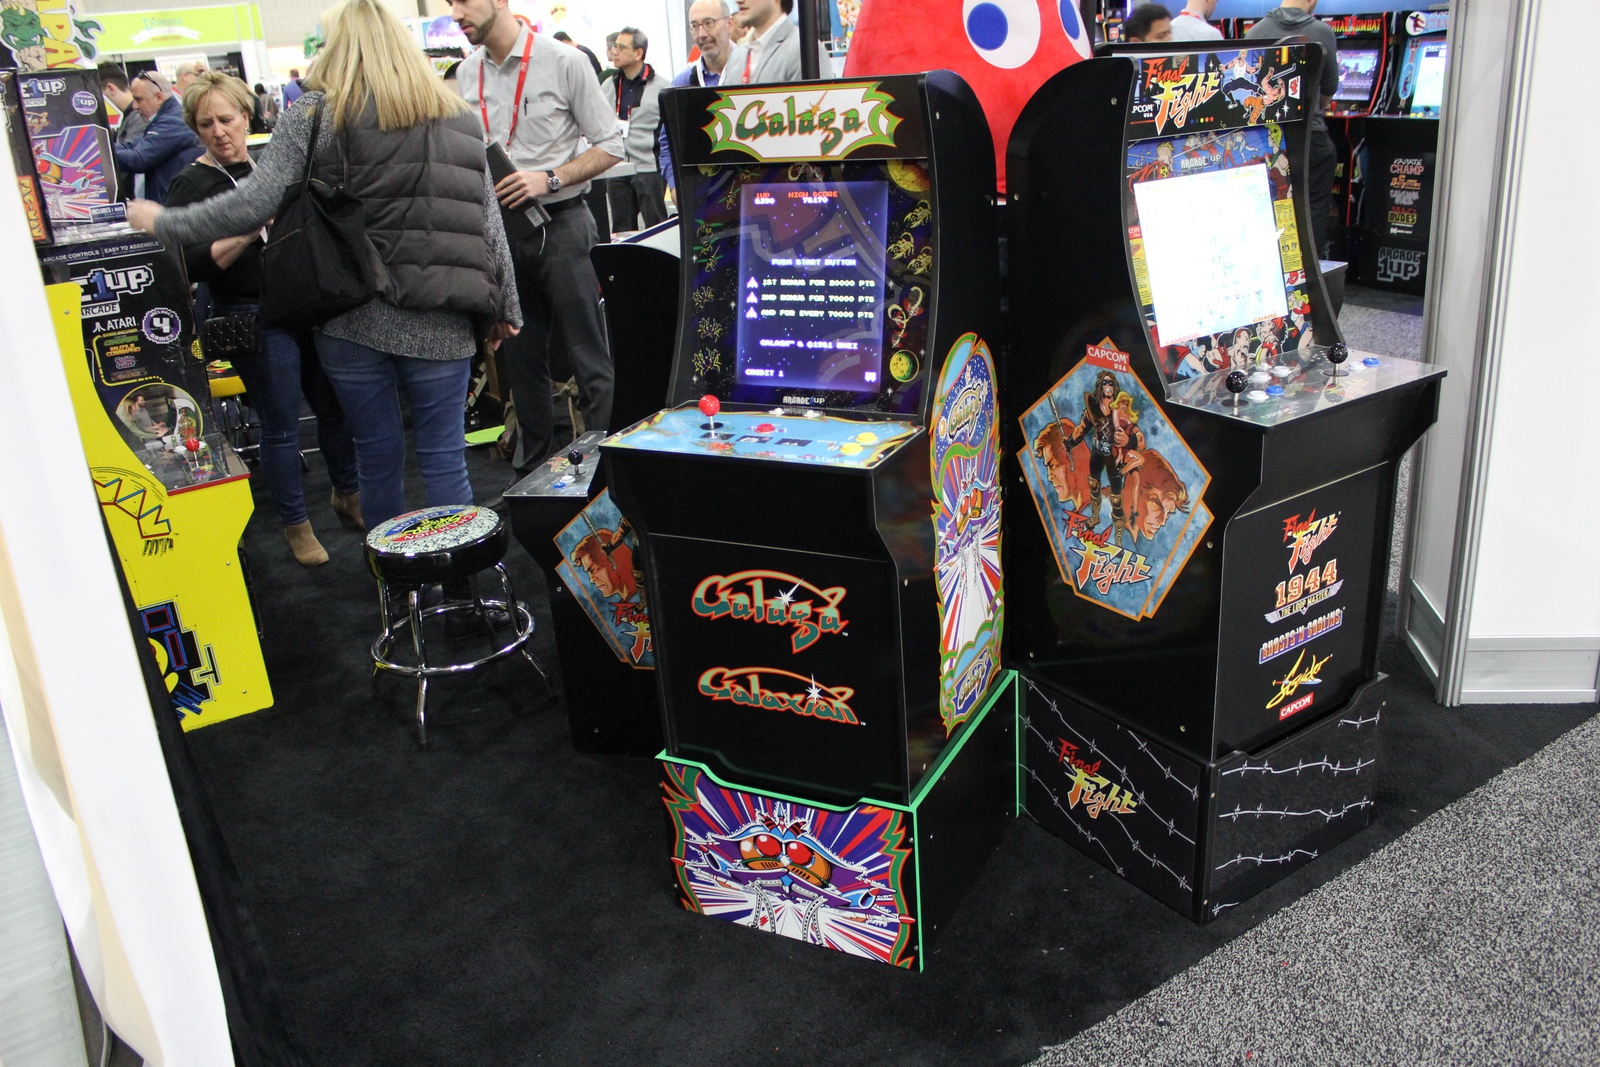 Arcade1UP at Toy Fair: More arcade cabinets for your home | The Nerdy